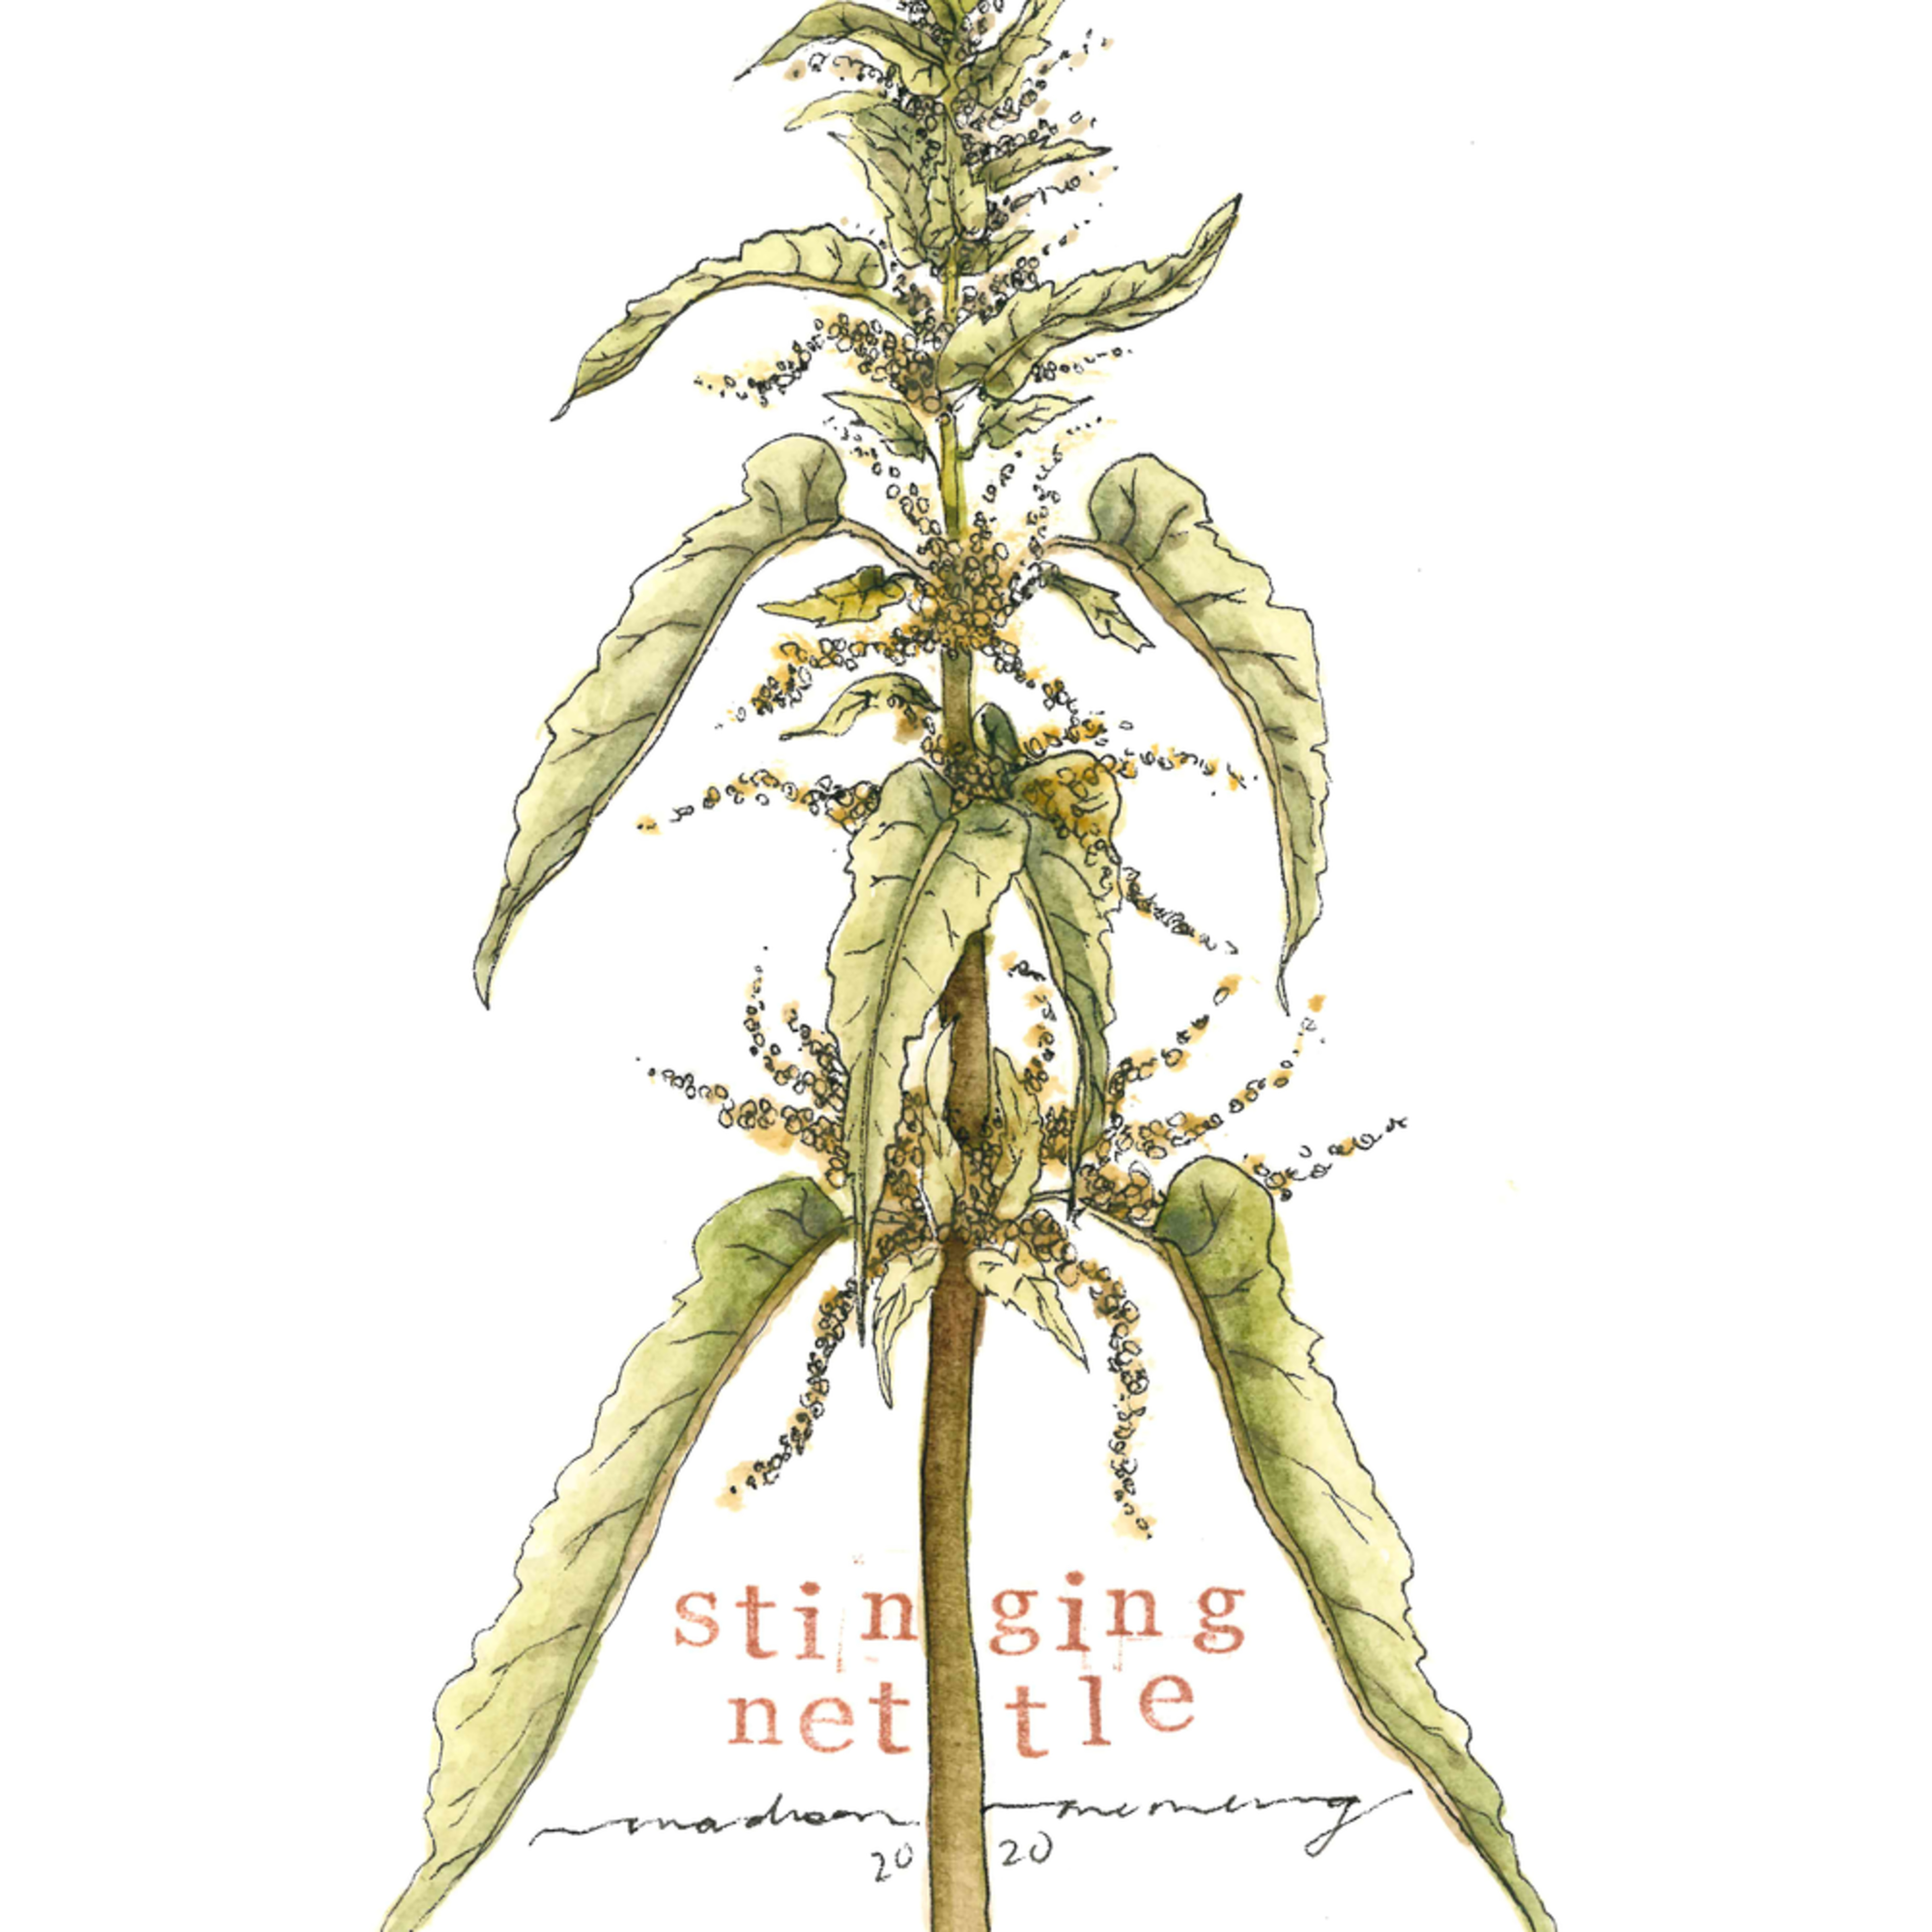 Stinging nettle by madison memering sized at 8x10 copy fuuscg